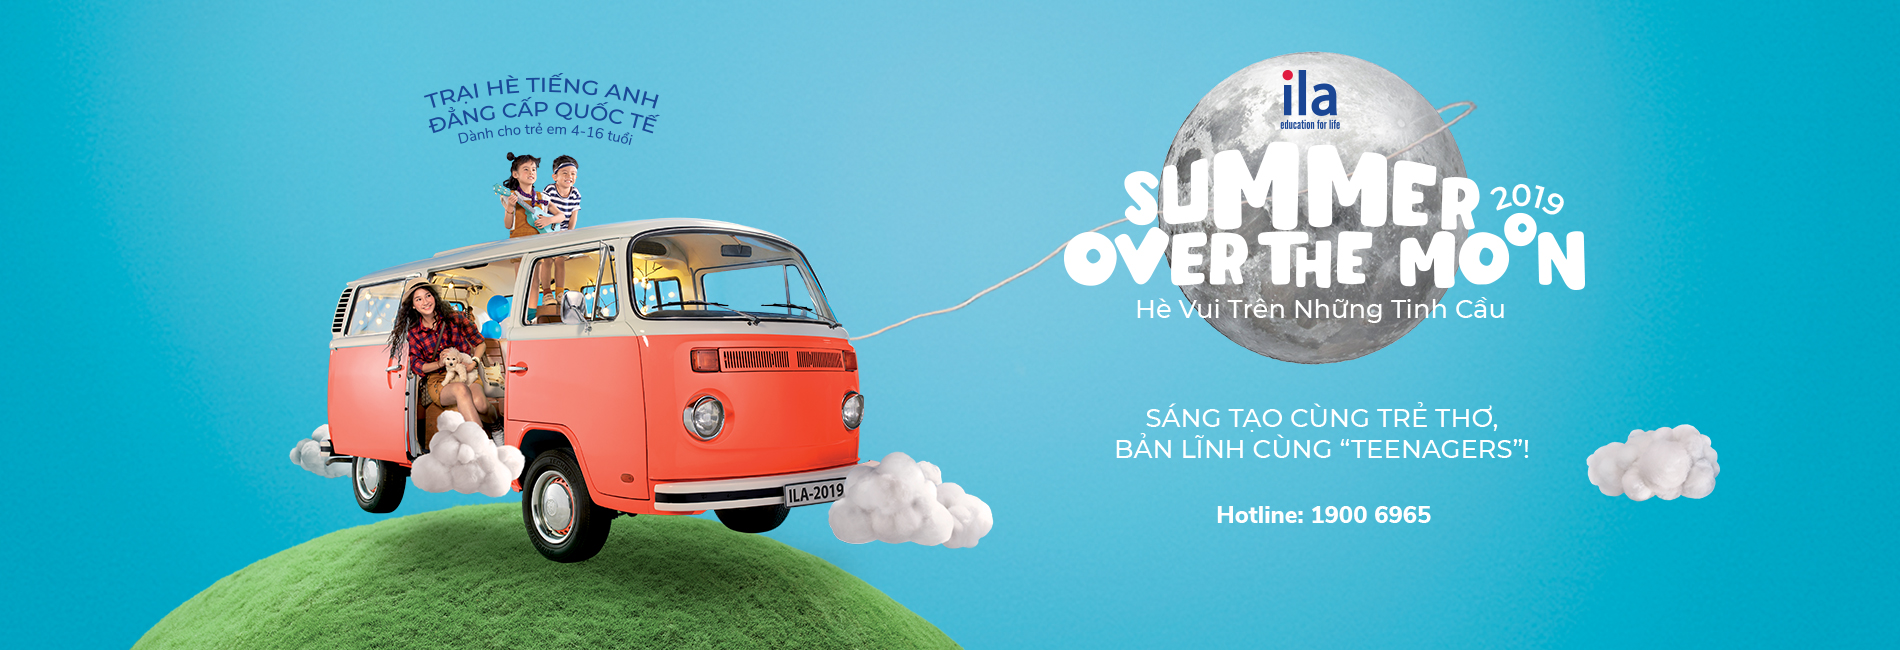 <a href='https://ila.edu.vn/anh-van-he/' target='_blank'>Summer Over The Moon</a>